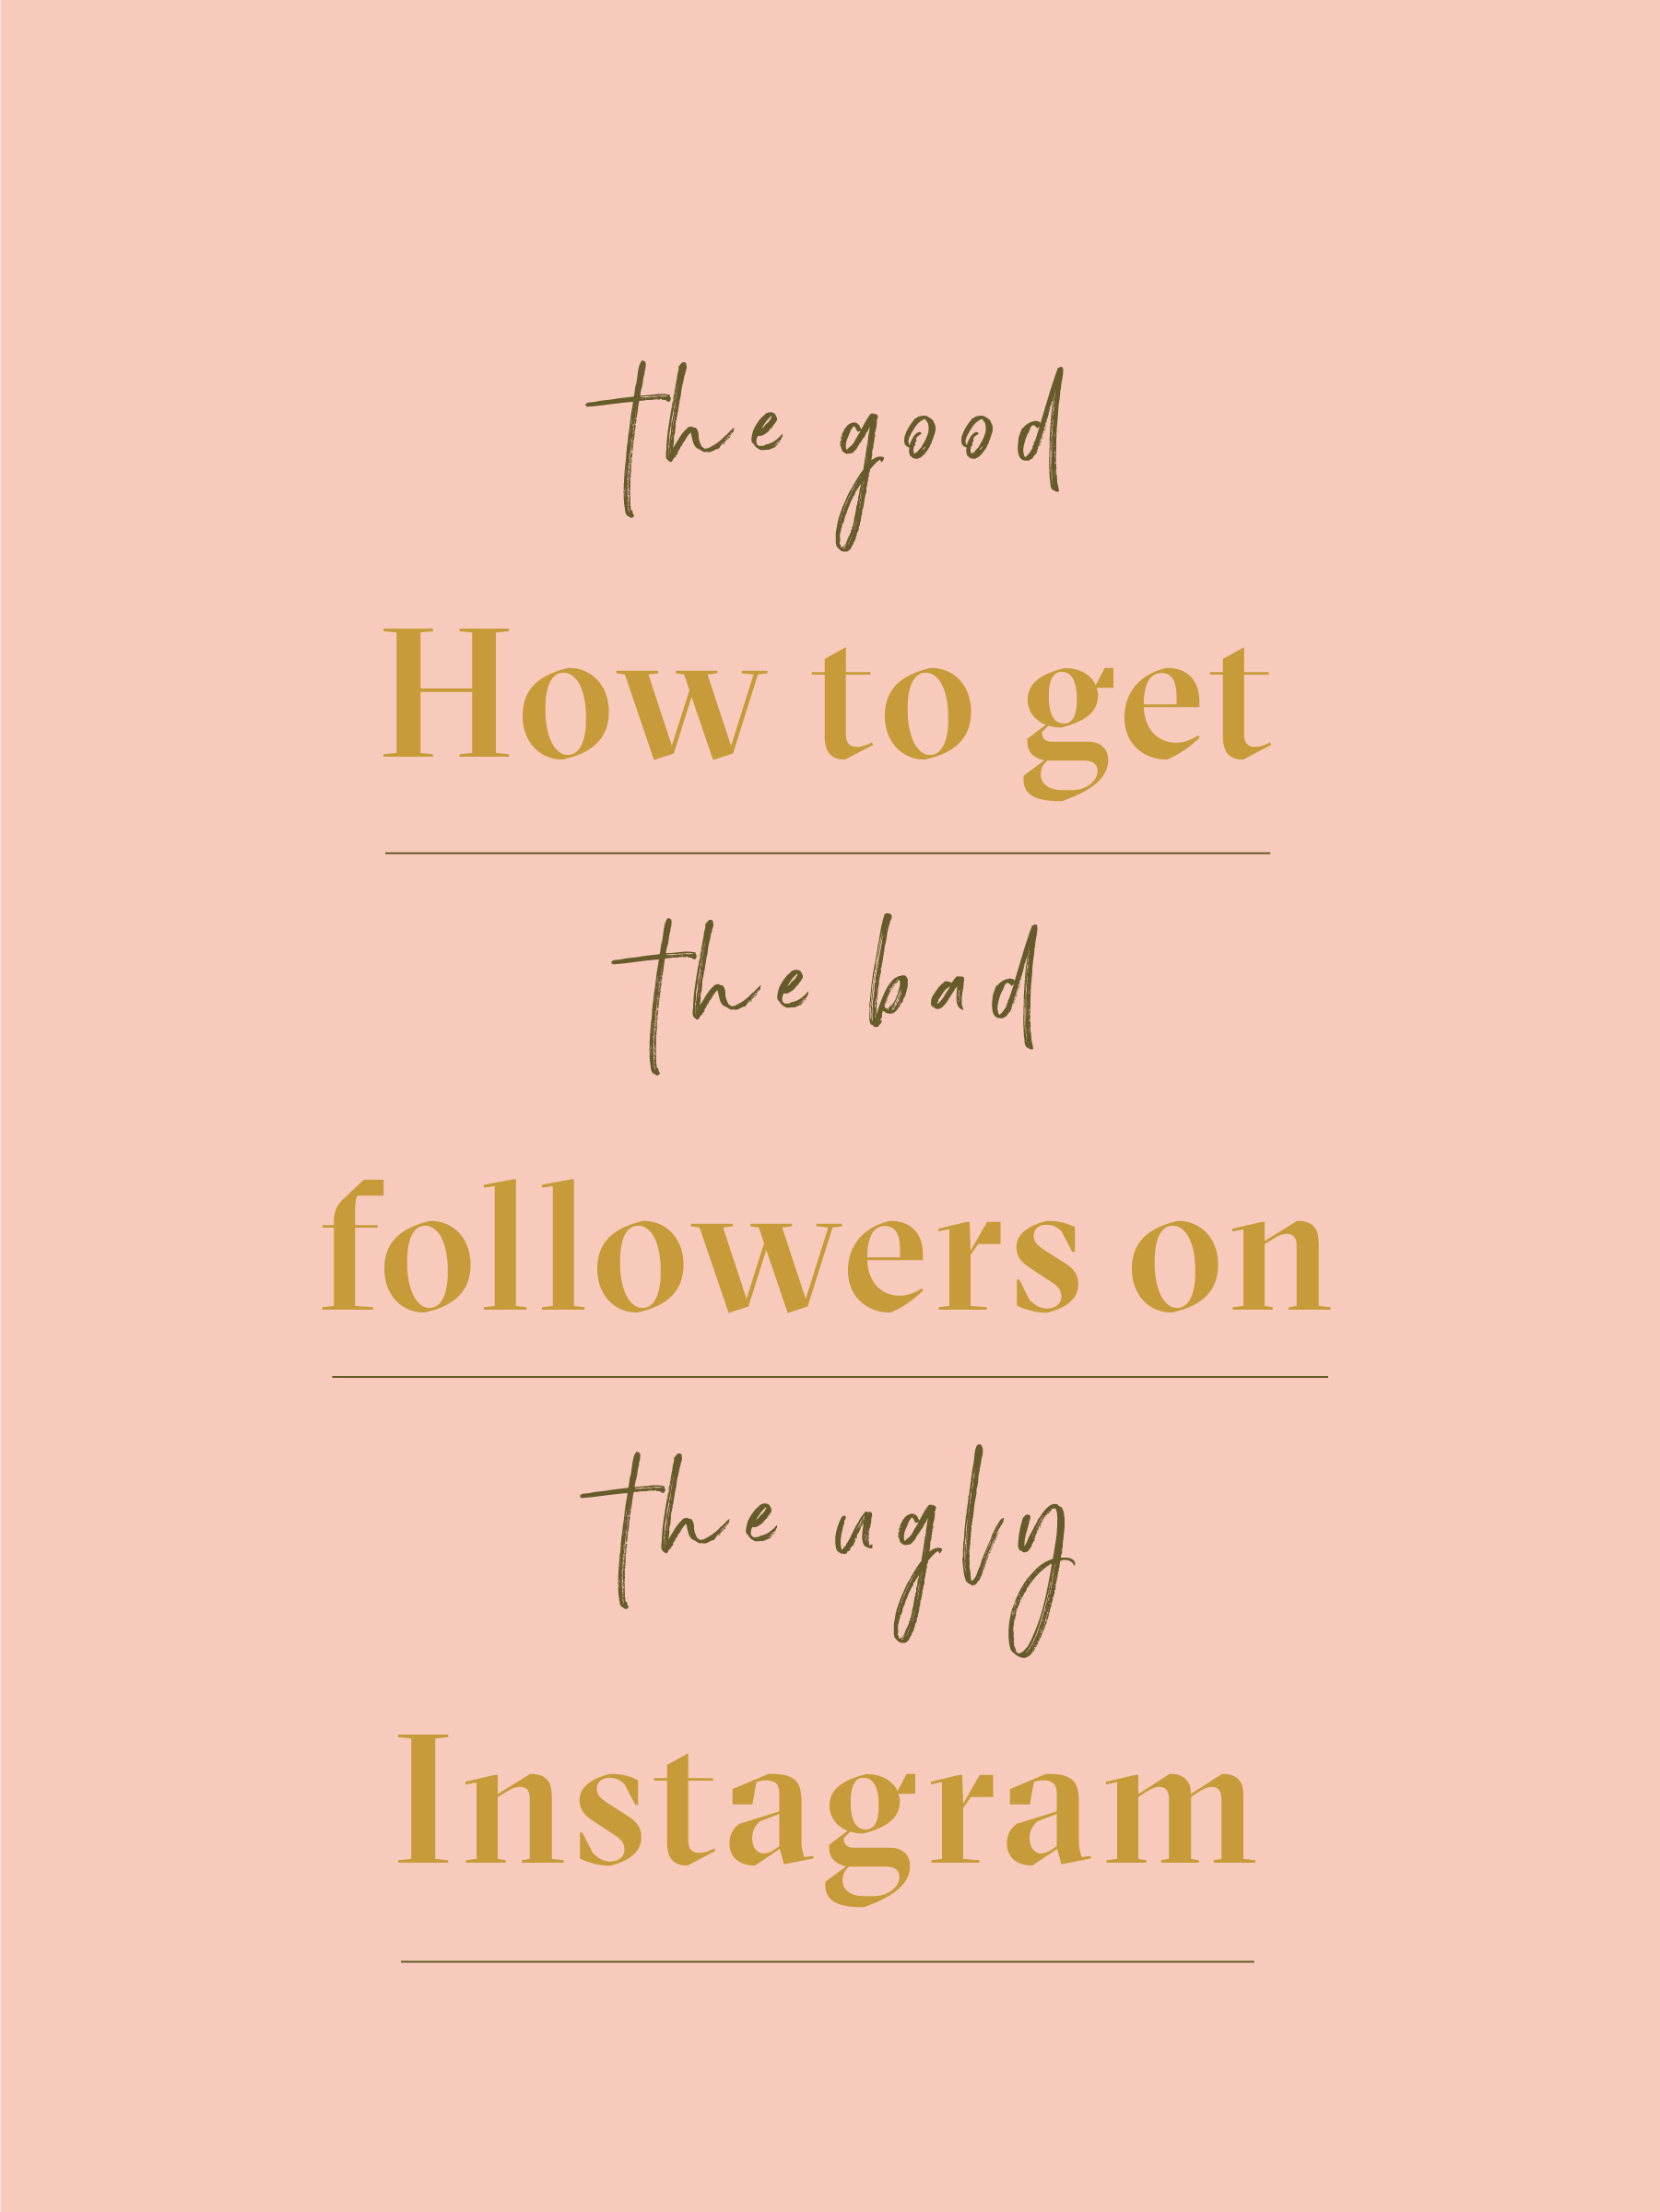 10 ways to get Followers on Instagram: The No Bullshit Guide